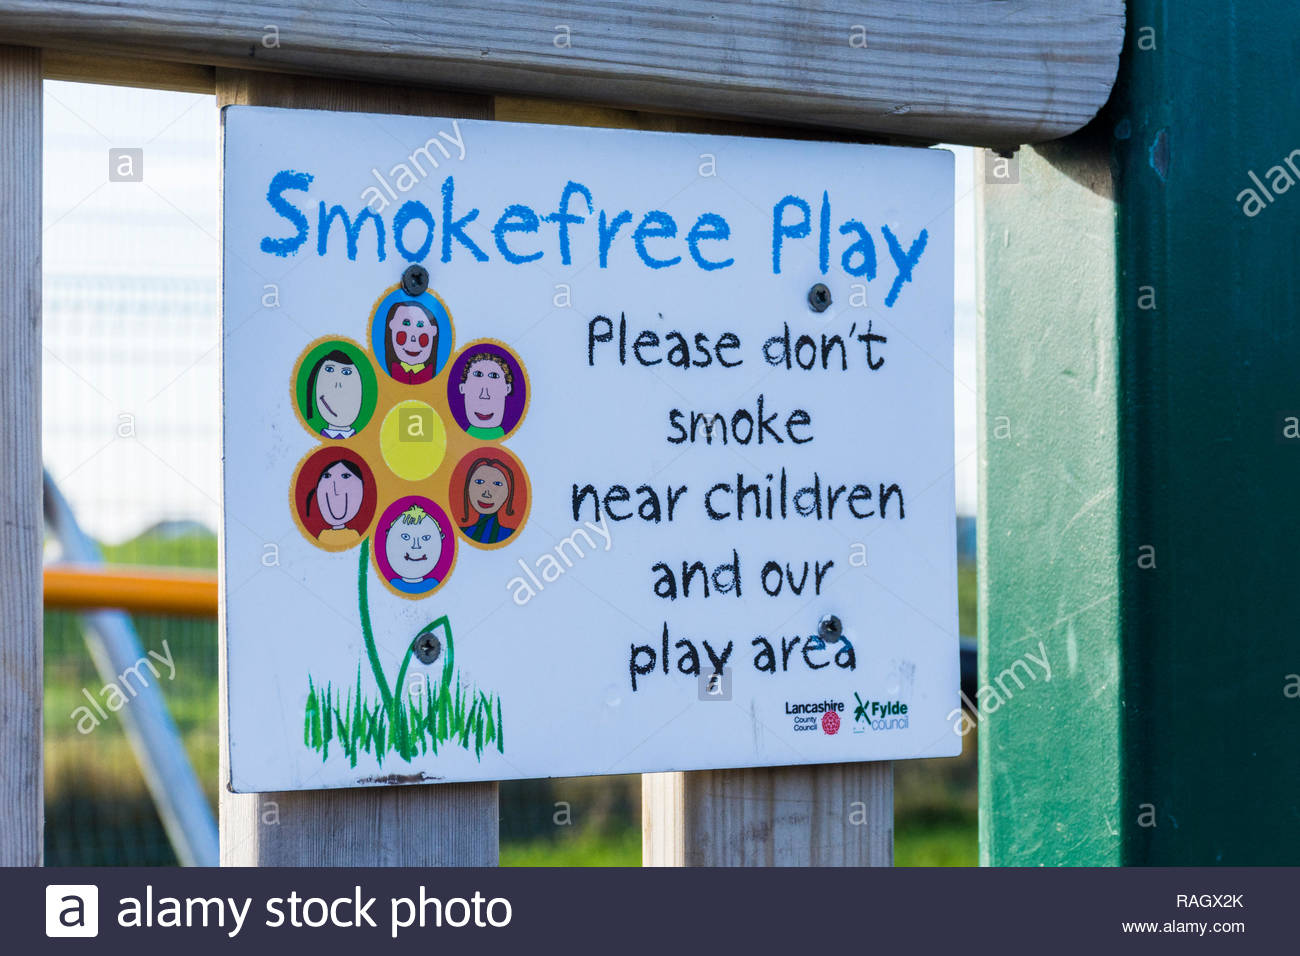 Sign on the gate of a play area requesting smokefree play and that people don't smoke near children and the play area Stock Photo